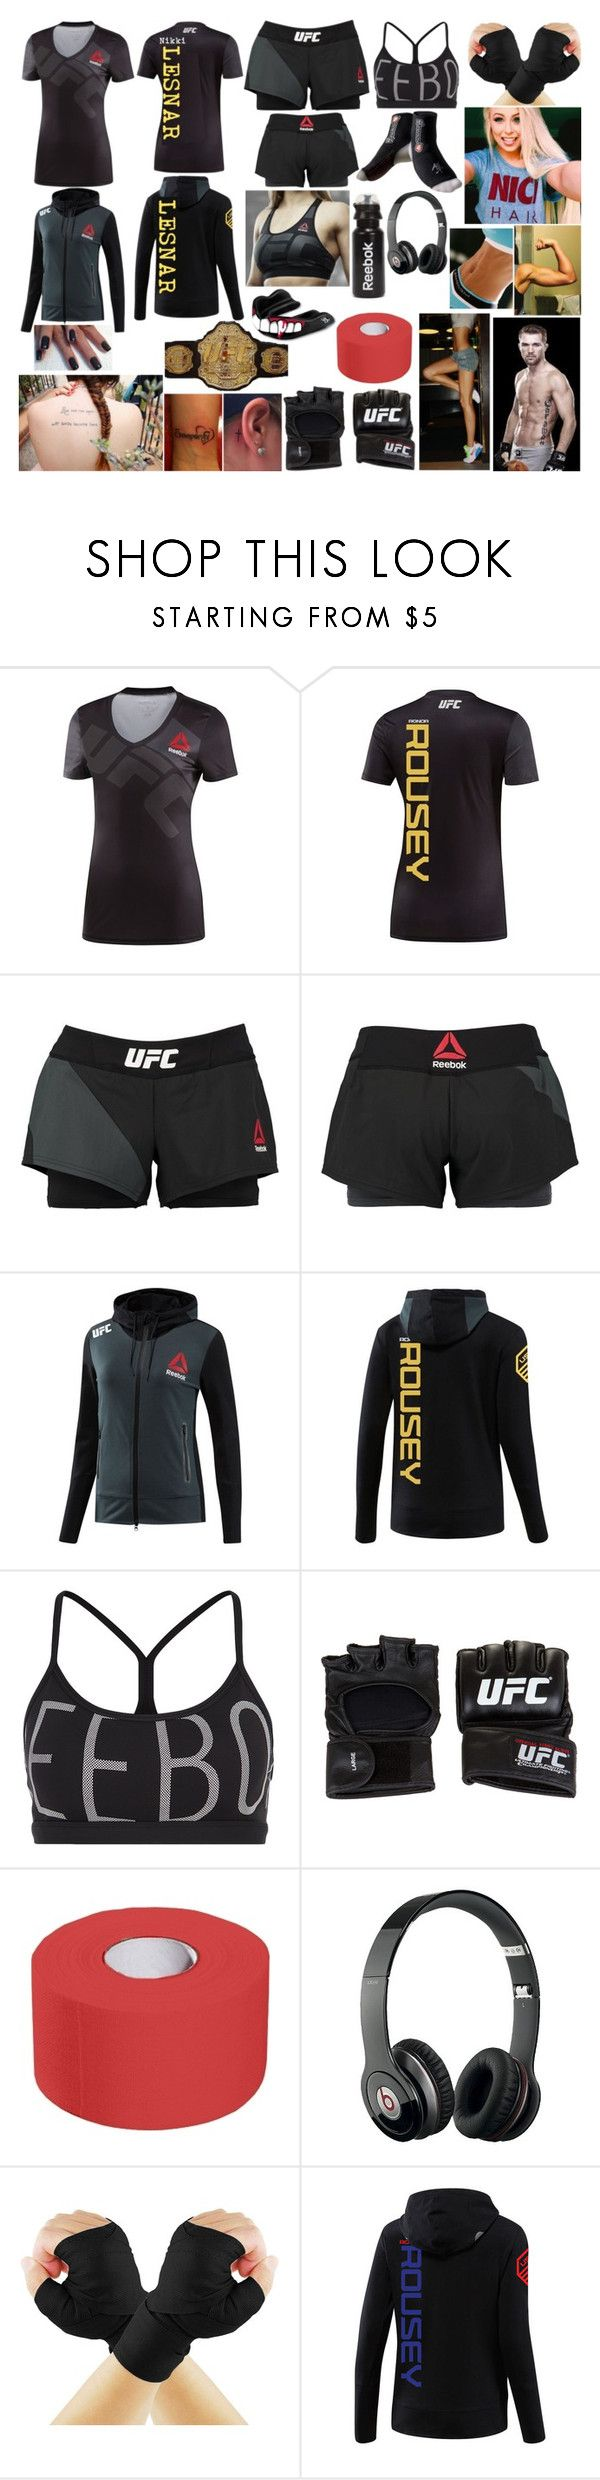 """UFC 189 vs Bryan Caraway"" by queennikkiufc ❤ liked on Polyvore featuring Reebok, UFC and Beats by Dr. Dre"